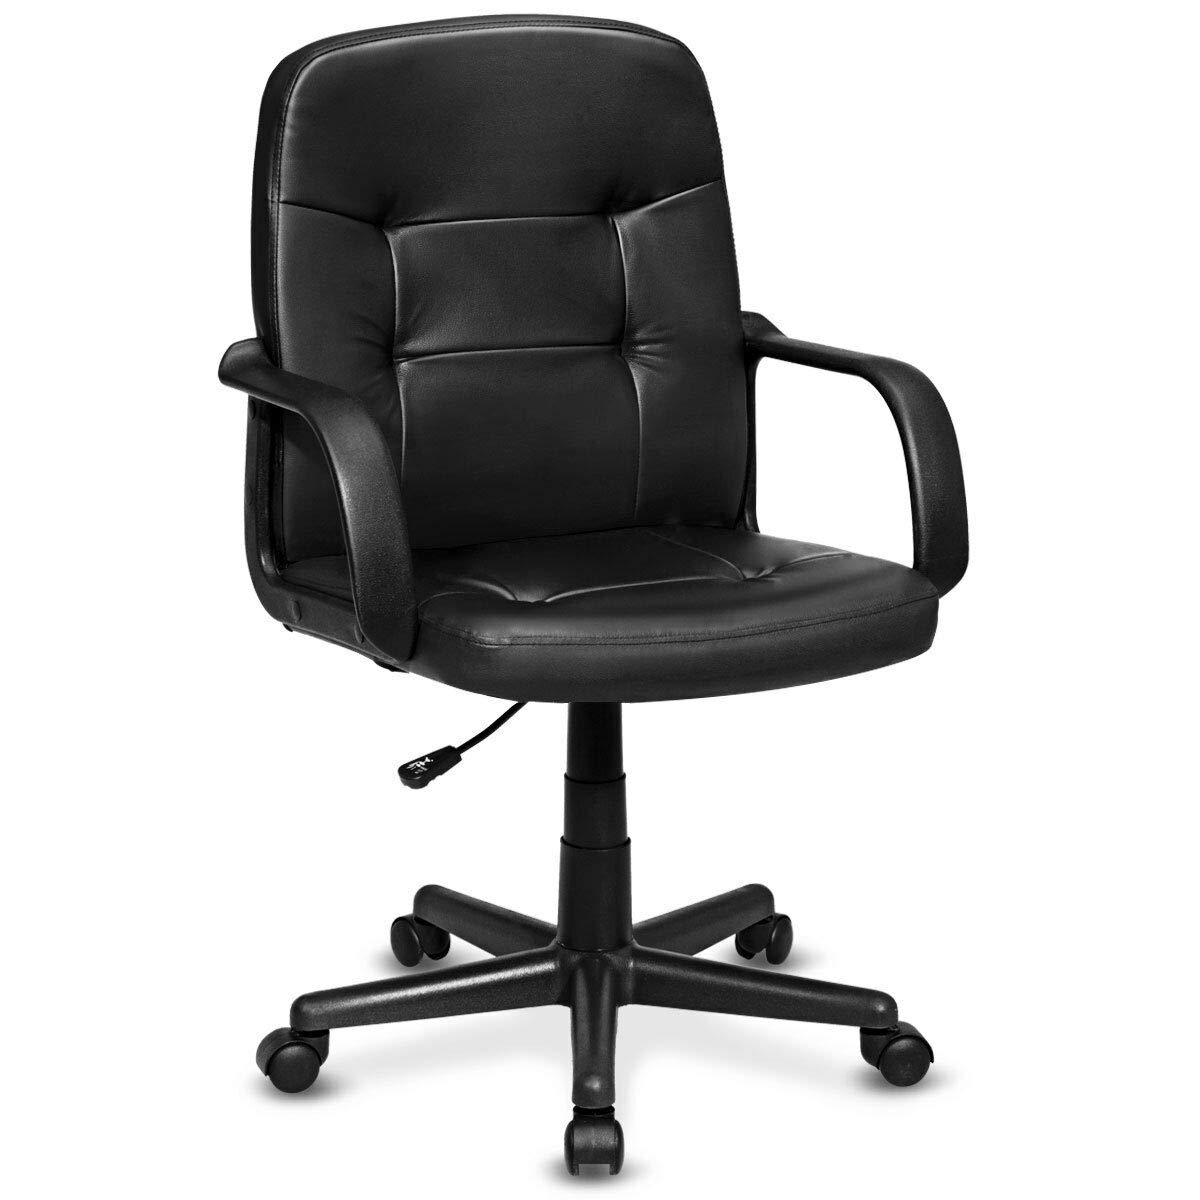 Giantex Executive Chair Mid Back Office W/Arms and Swivel Wheels, Ergonomic PU Leather for Home Office Use Computer Desk Task Chair